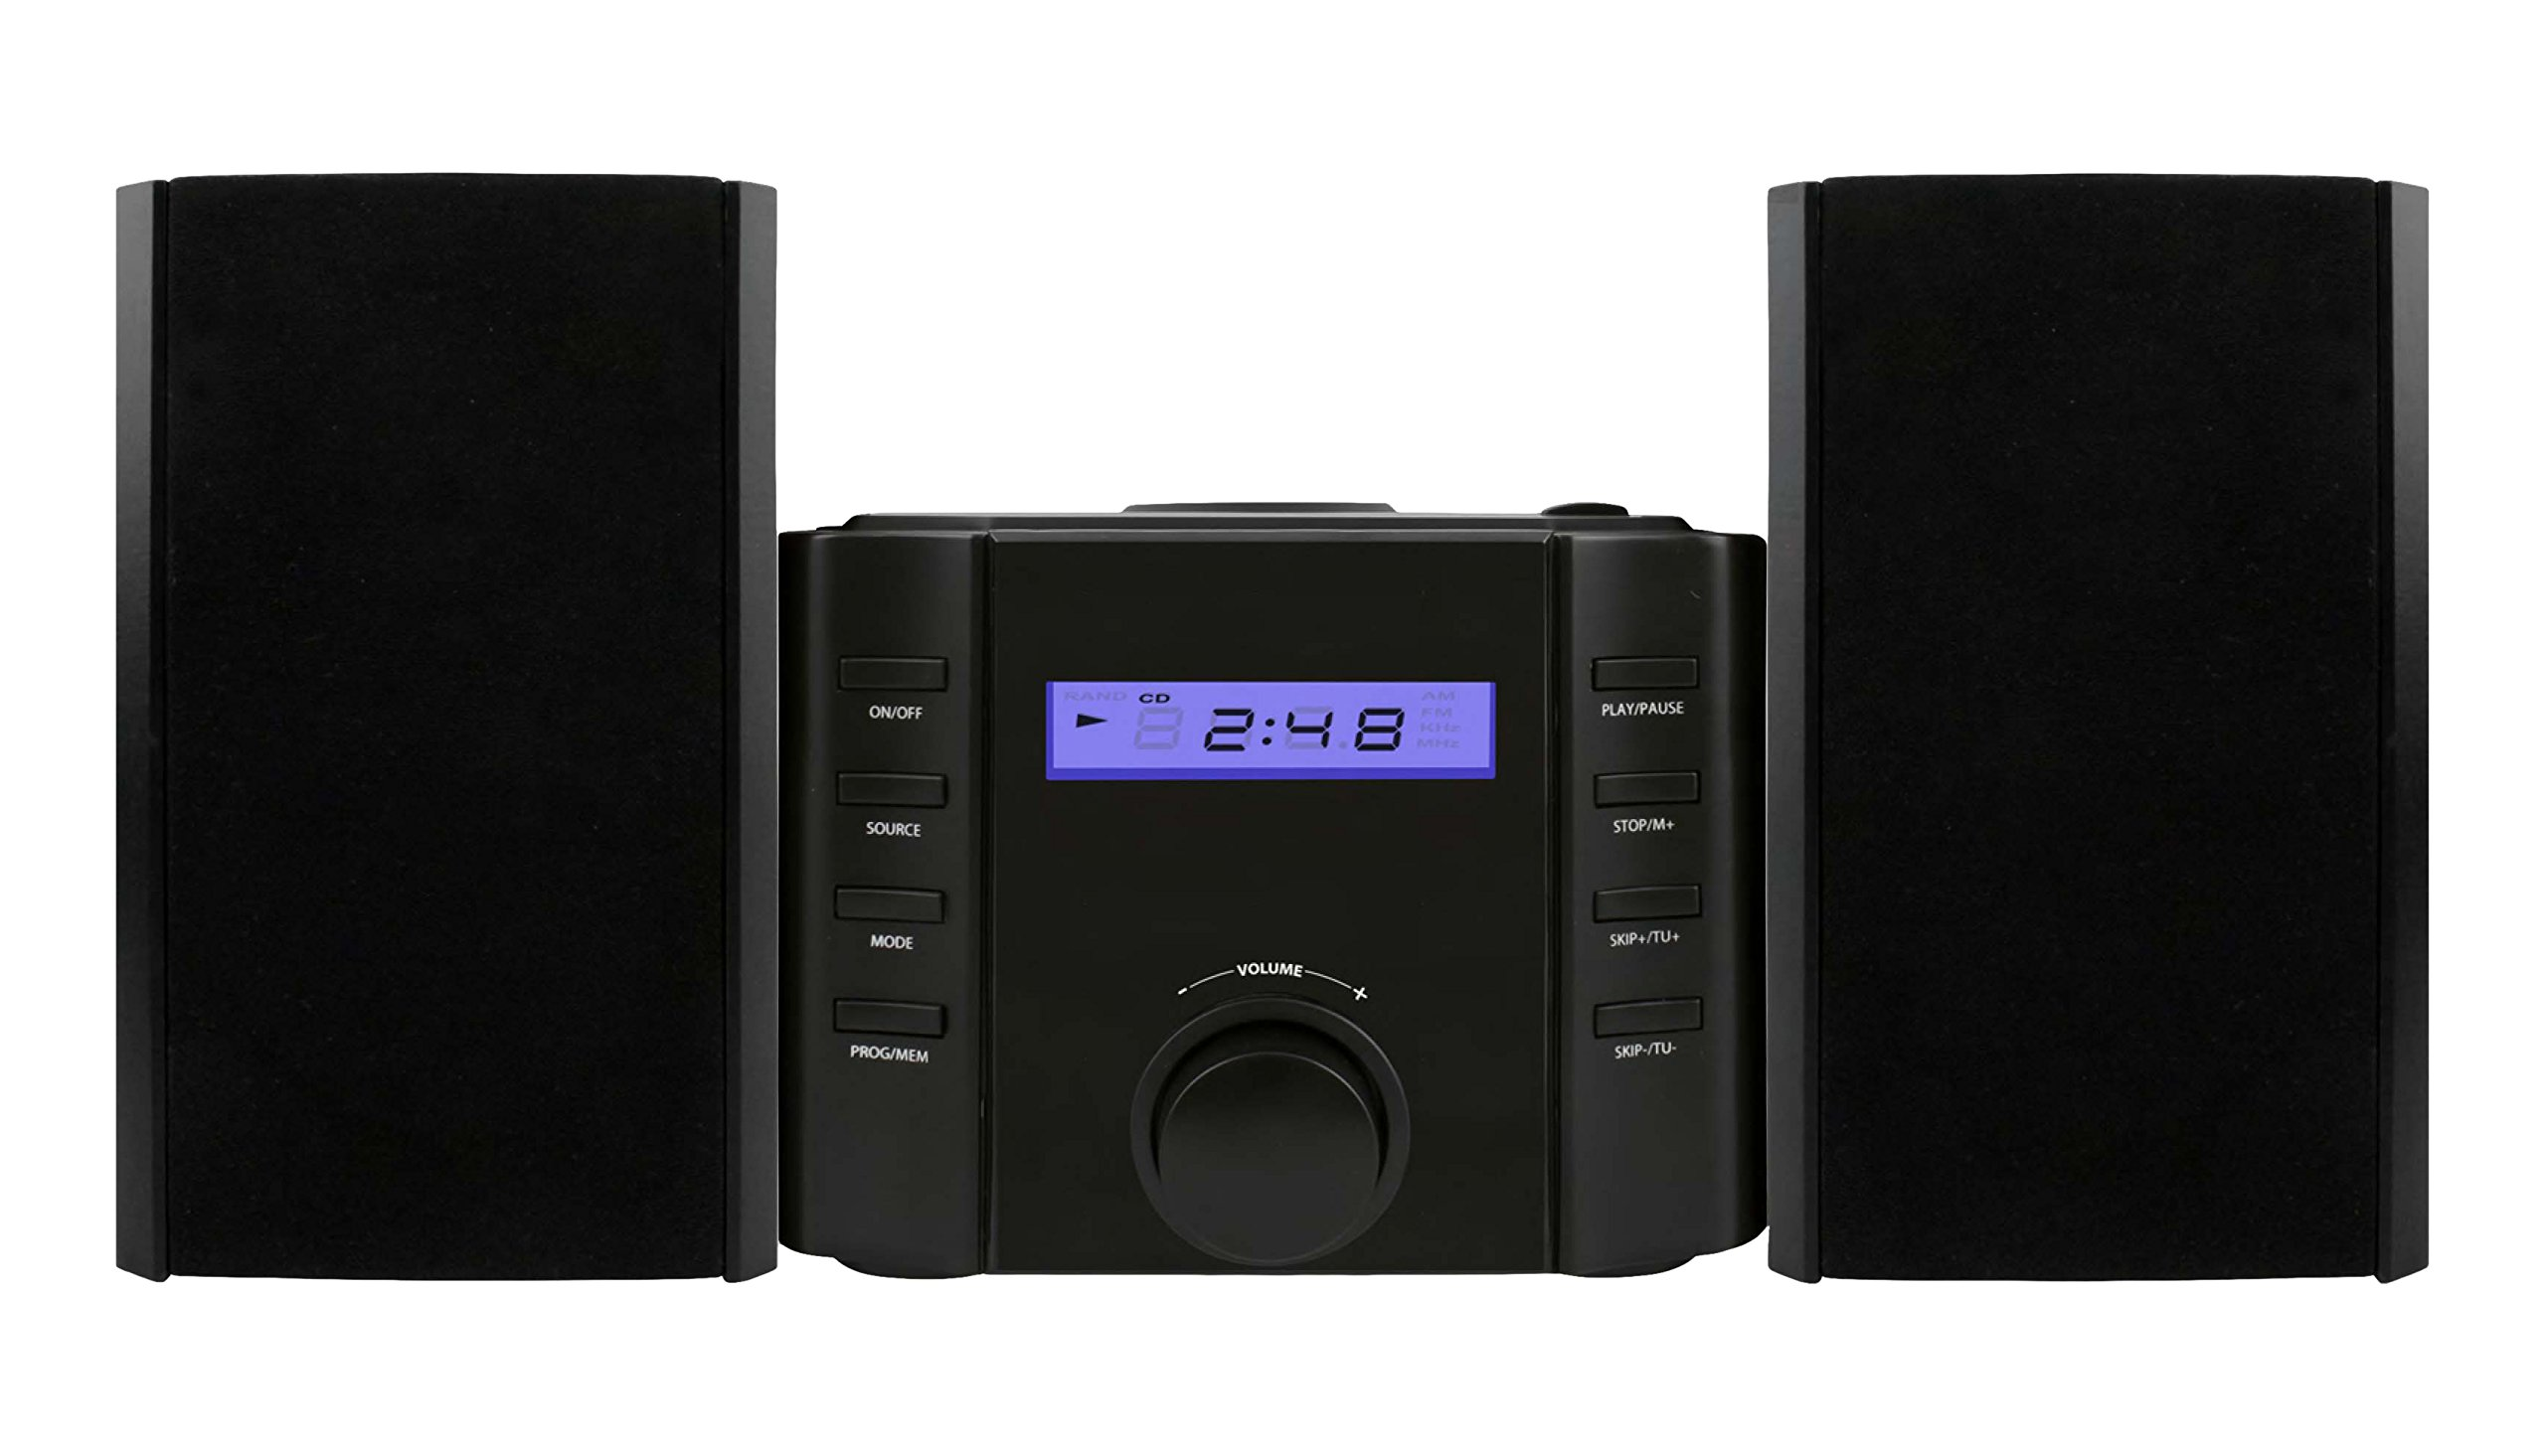 Gpx Hm3817dtbk Home Music System With Remote And Am Fm